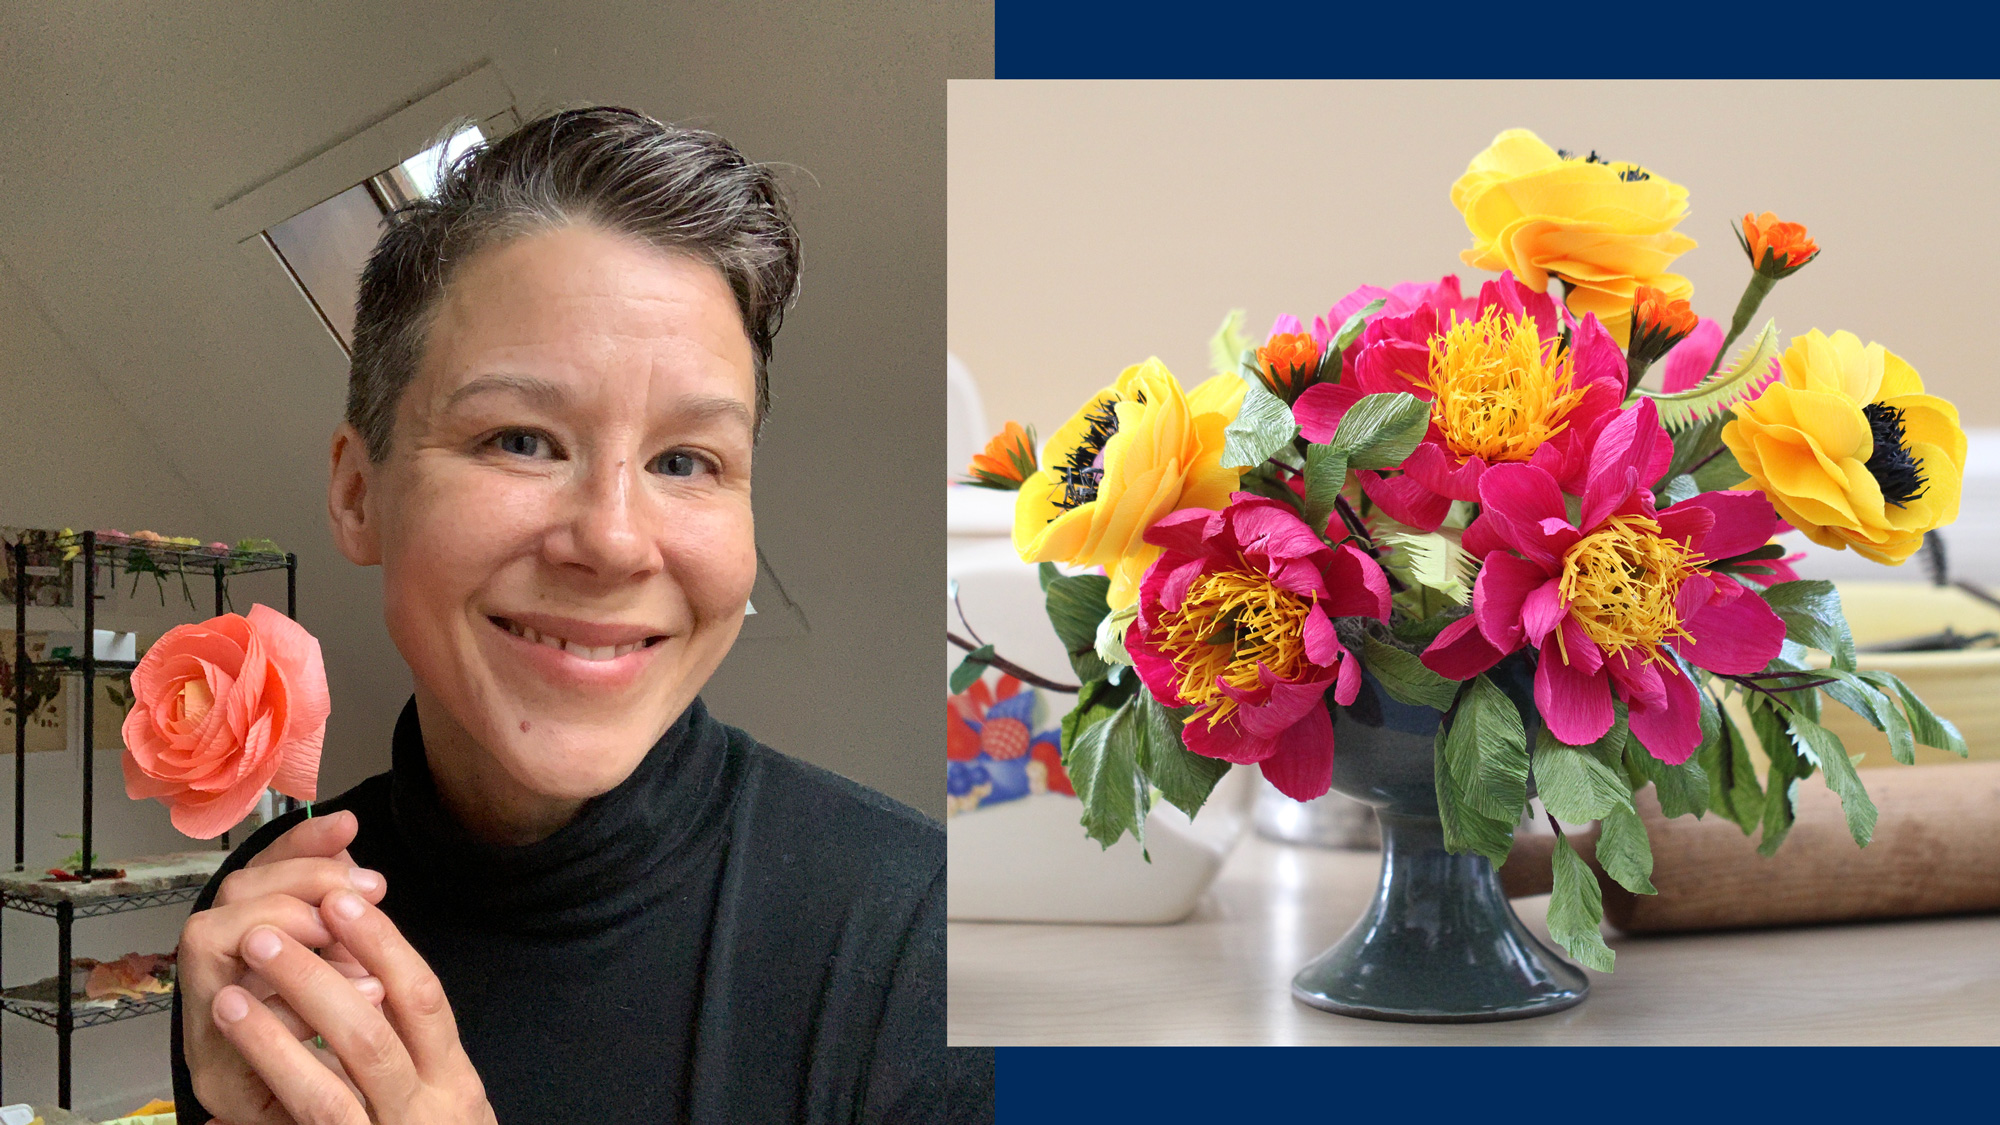 A photo of a woman holding a paper flower, next to a photo of a paper flower bouquet